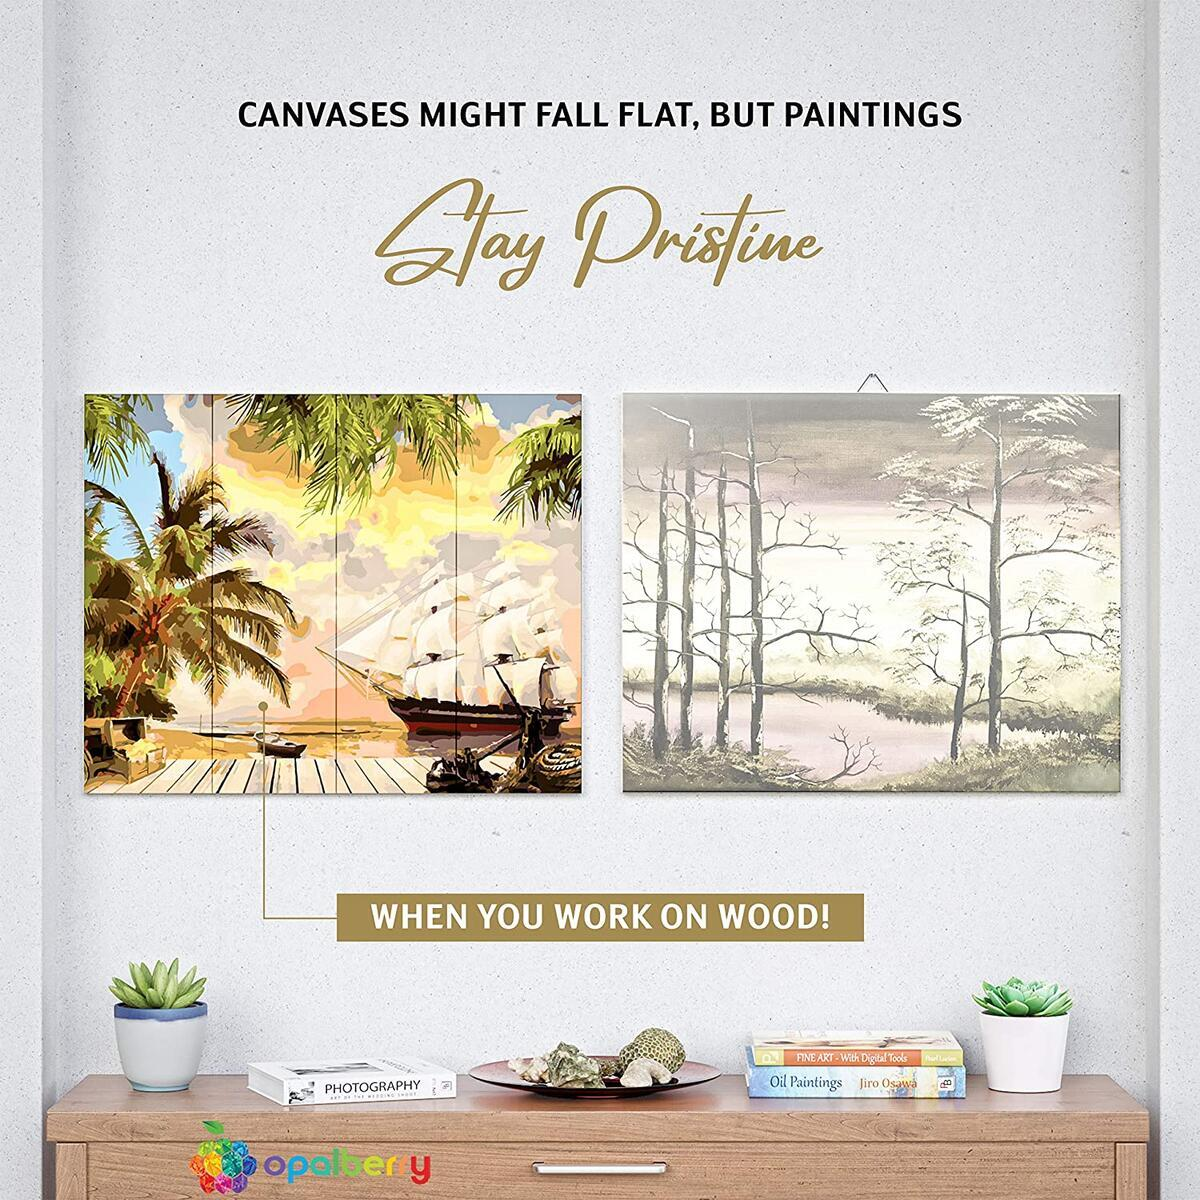 DIY Paint By Numbers For Adults, Framed Wooden Board! 16x20